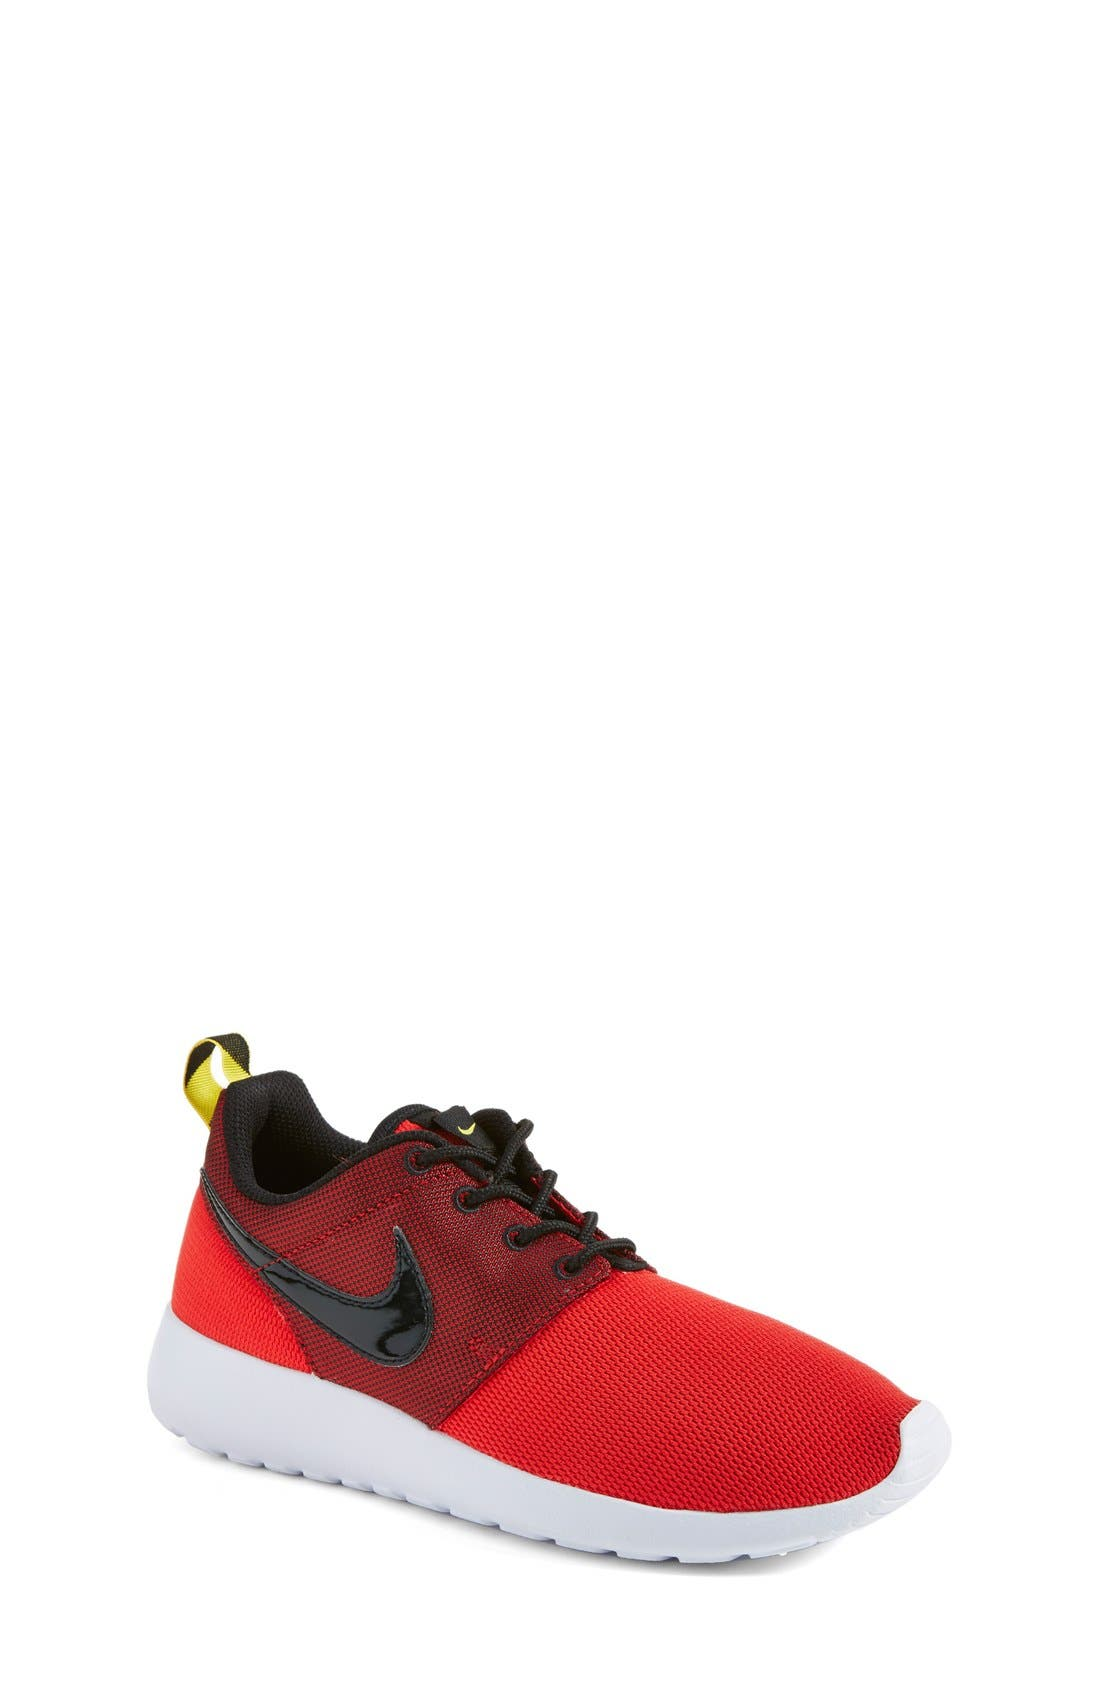 'Roshe Run' Sneaker,                             Main thumbnail 51, color,